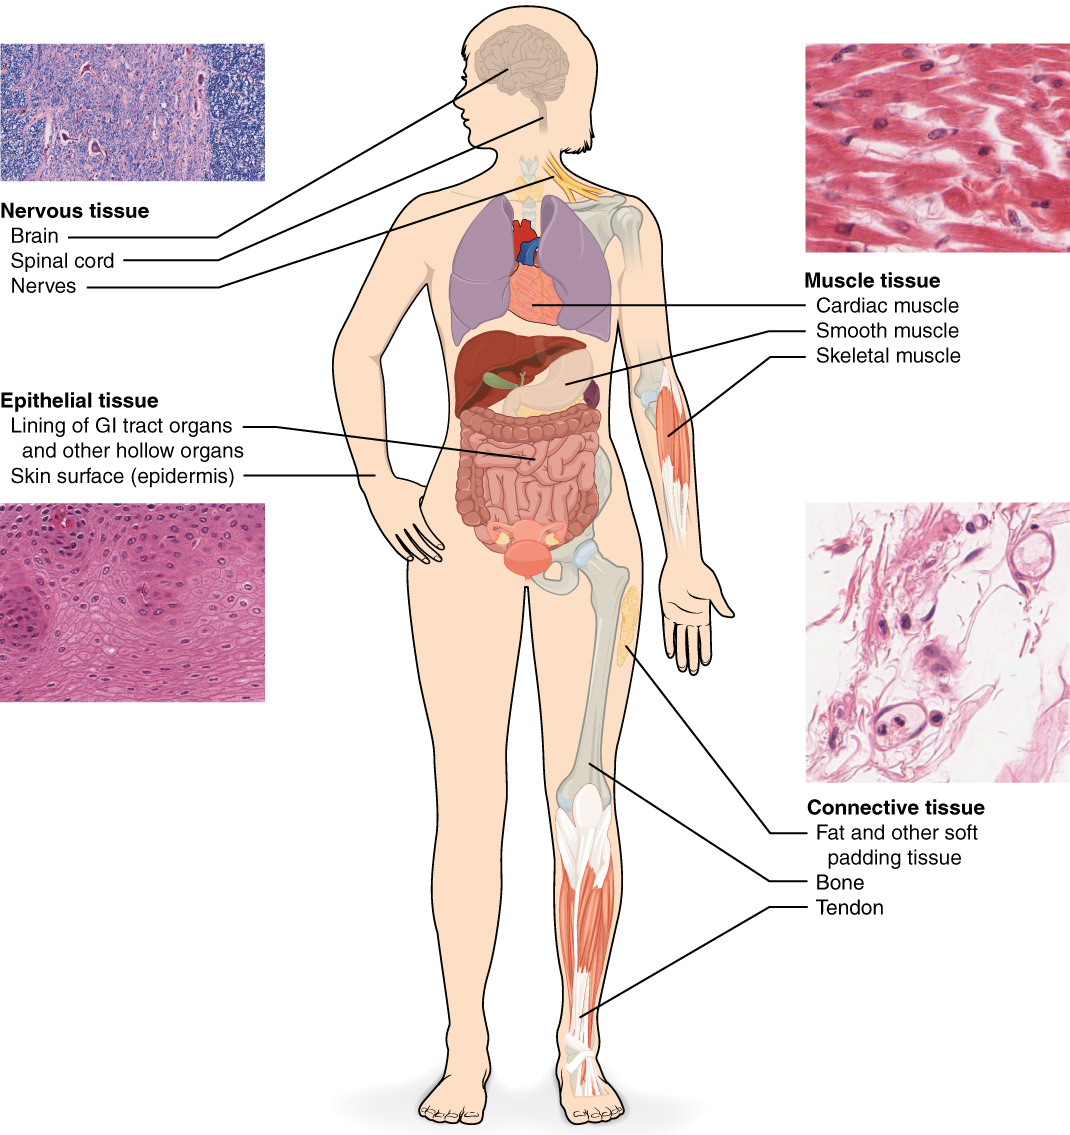 skin layers diagram labeled simple janitrol thermostat hpt 18 60 wiring types of tissues · anatomy and physiology